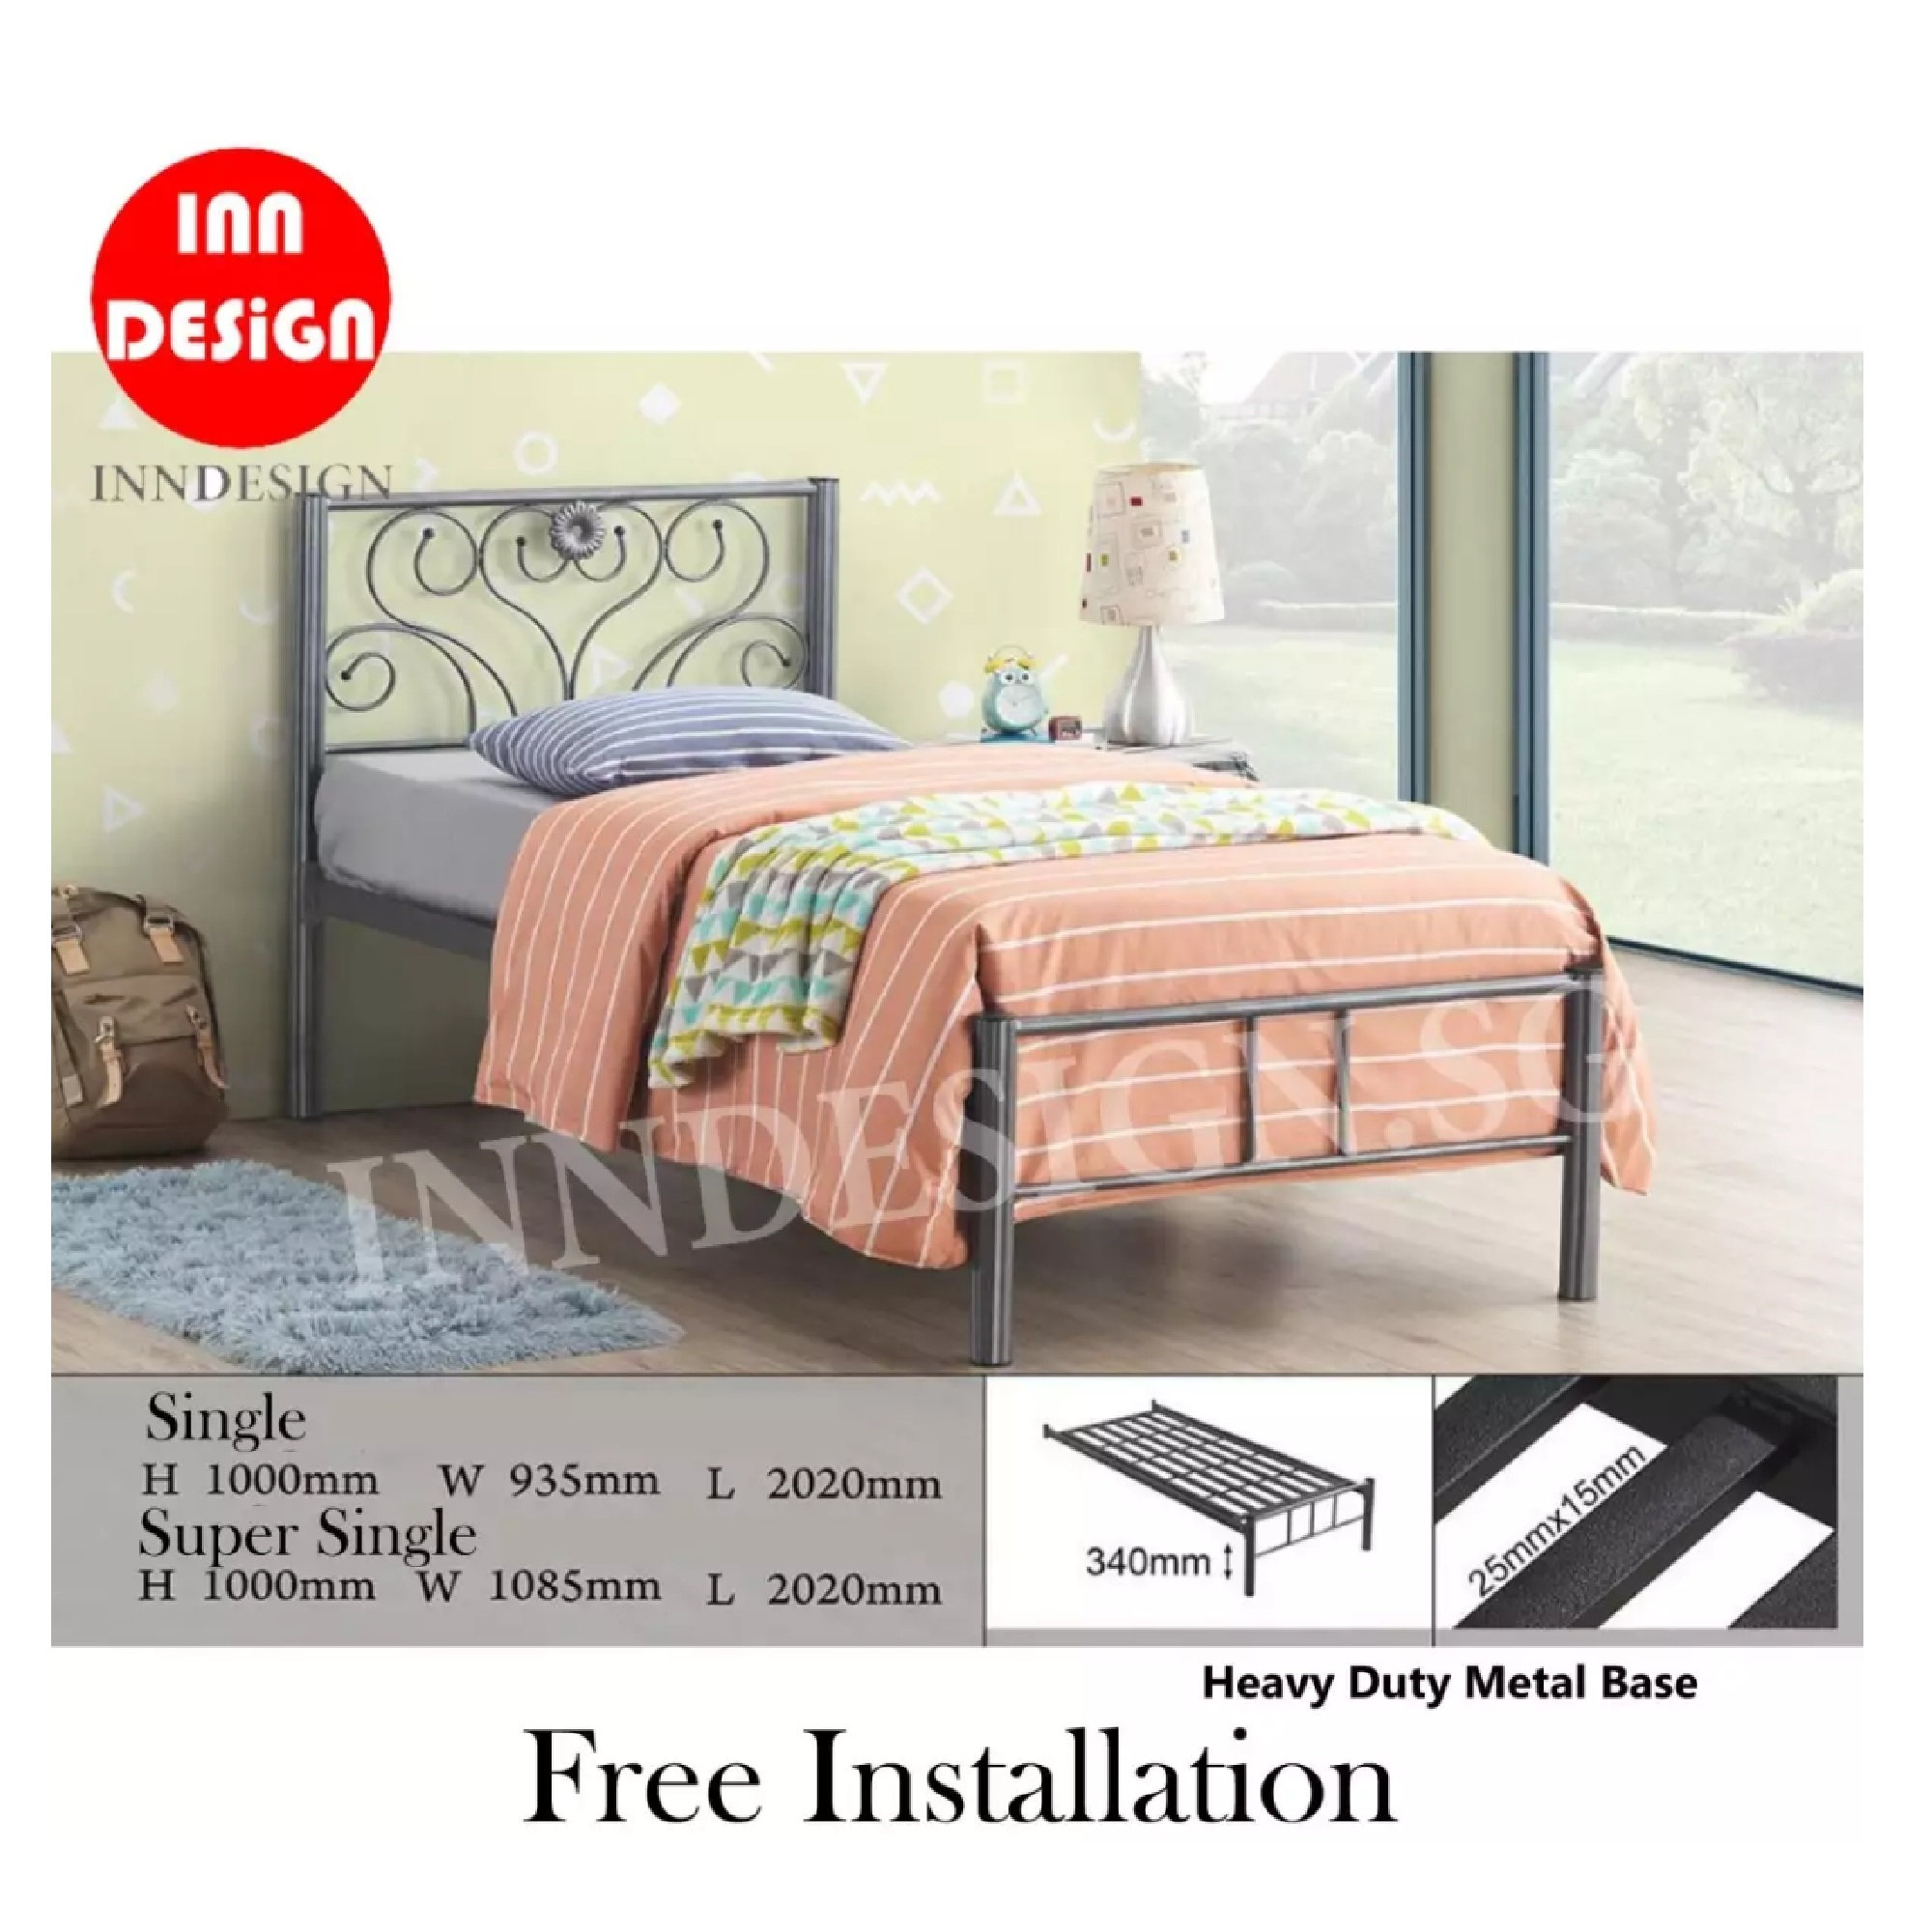 Emie Single Heavy Duty Metal Bedframe / Bed (Free Delivery and Installation)